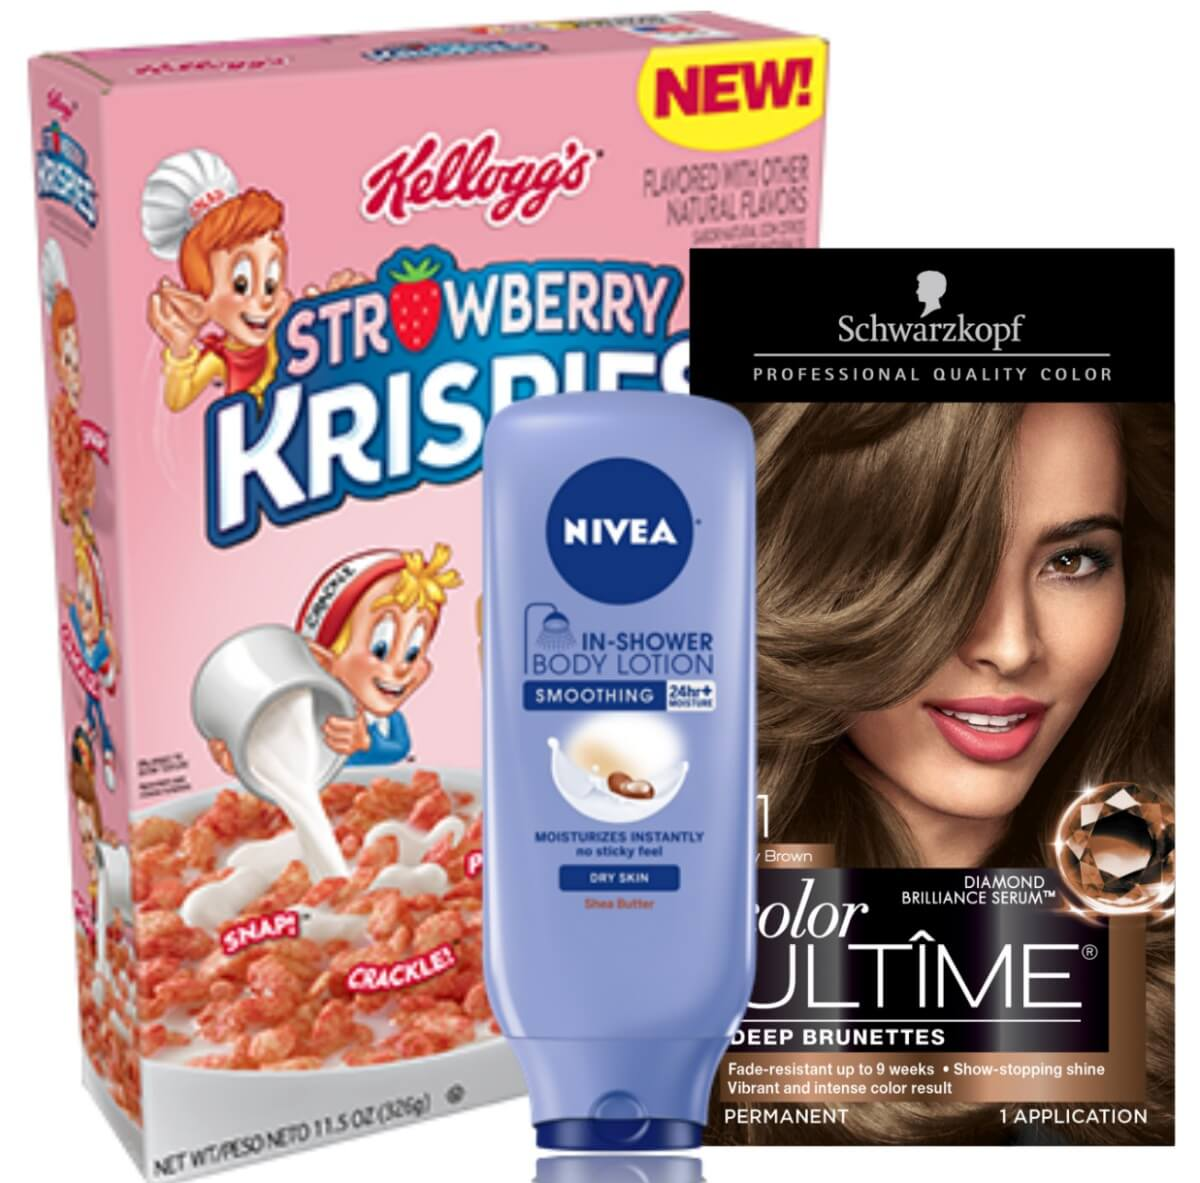 photograph regarding Right Guard Printable Coupon titled Todays Supreme Refreshing Discount coupons - Conserve upon Nivea, Kelloggs, Immediately